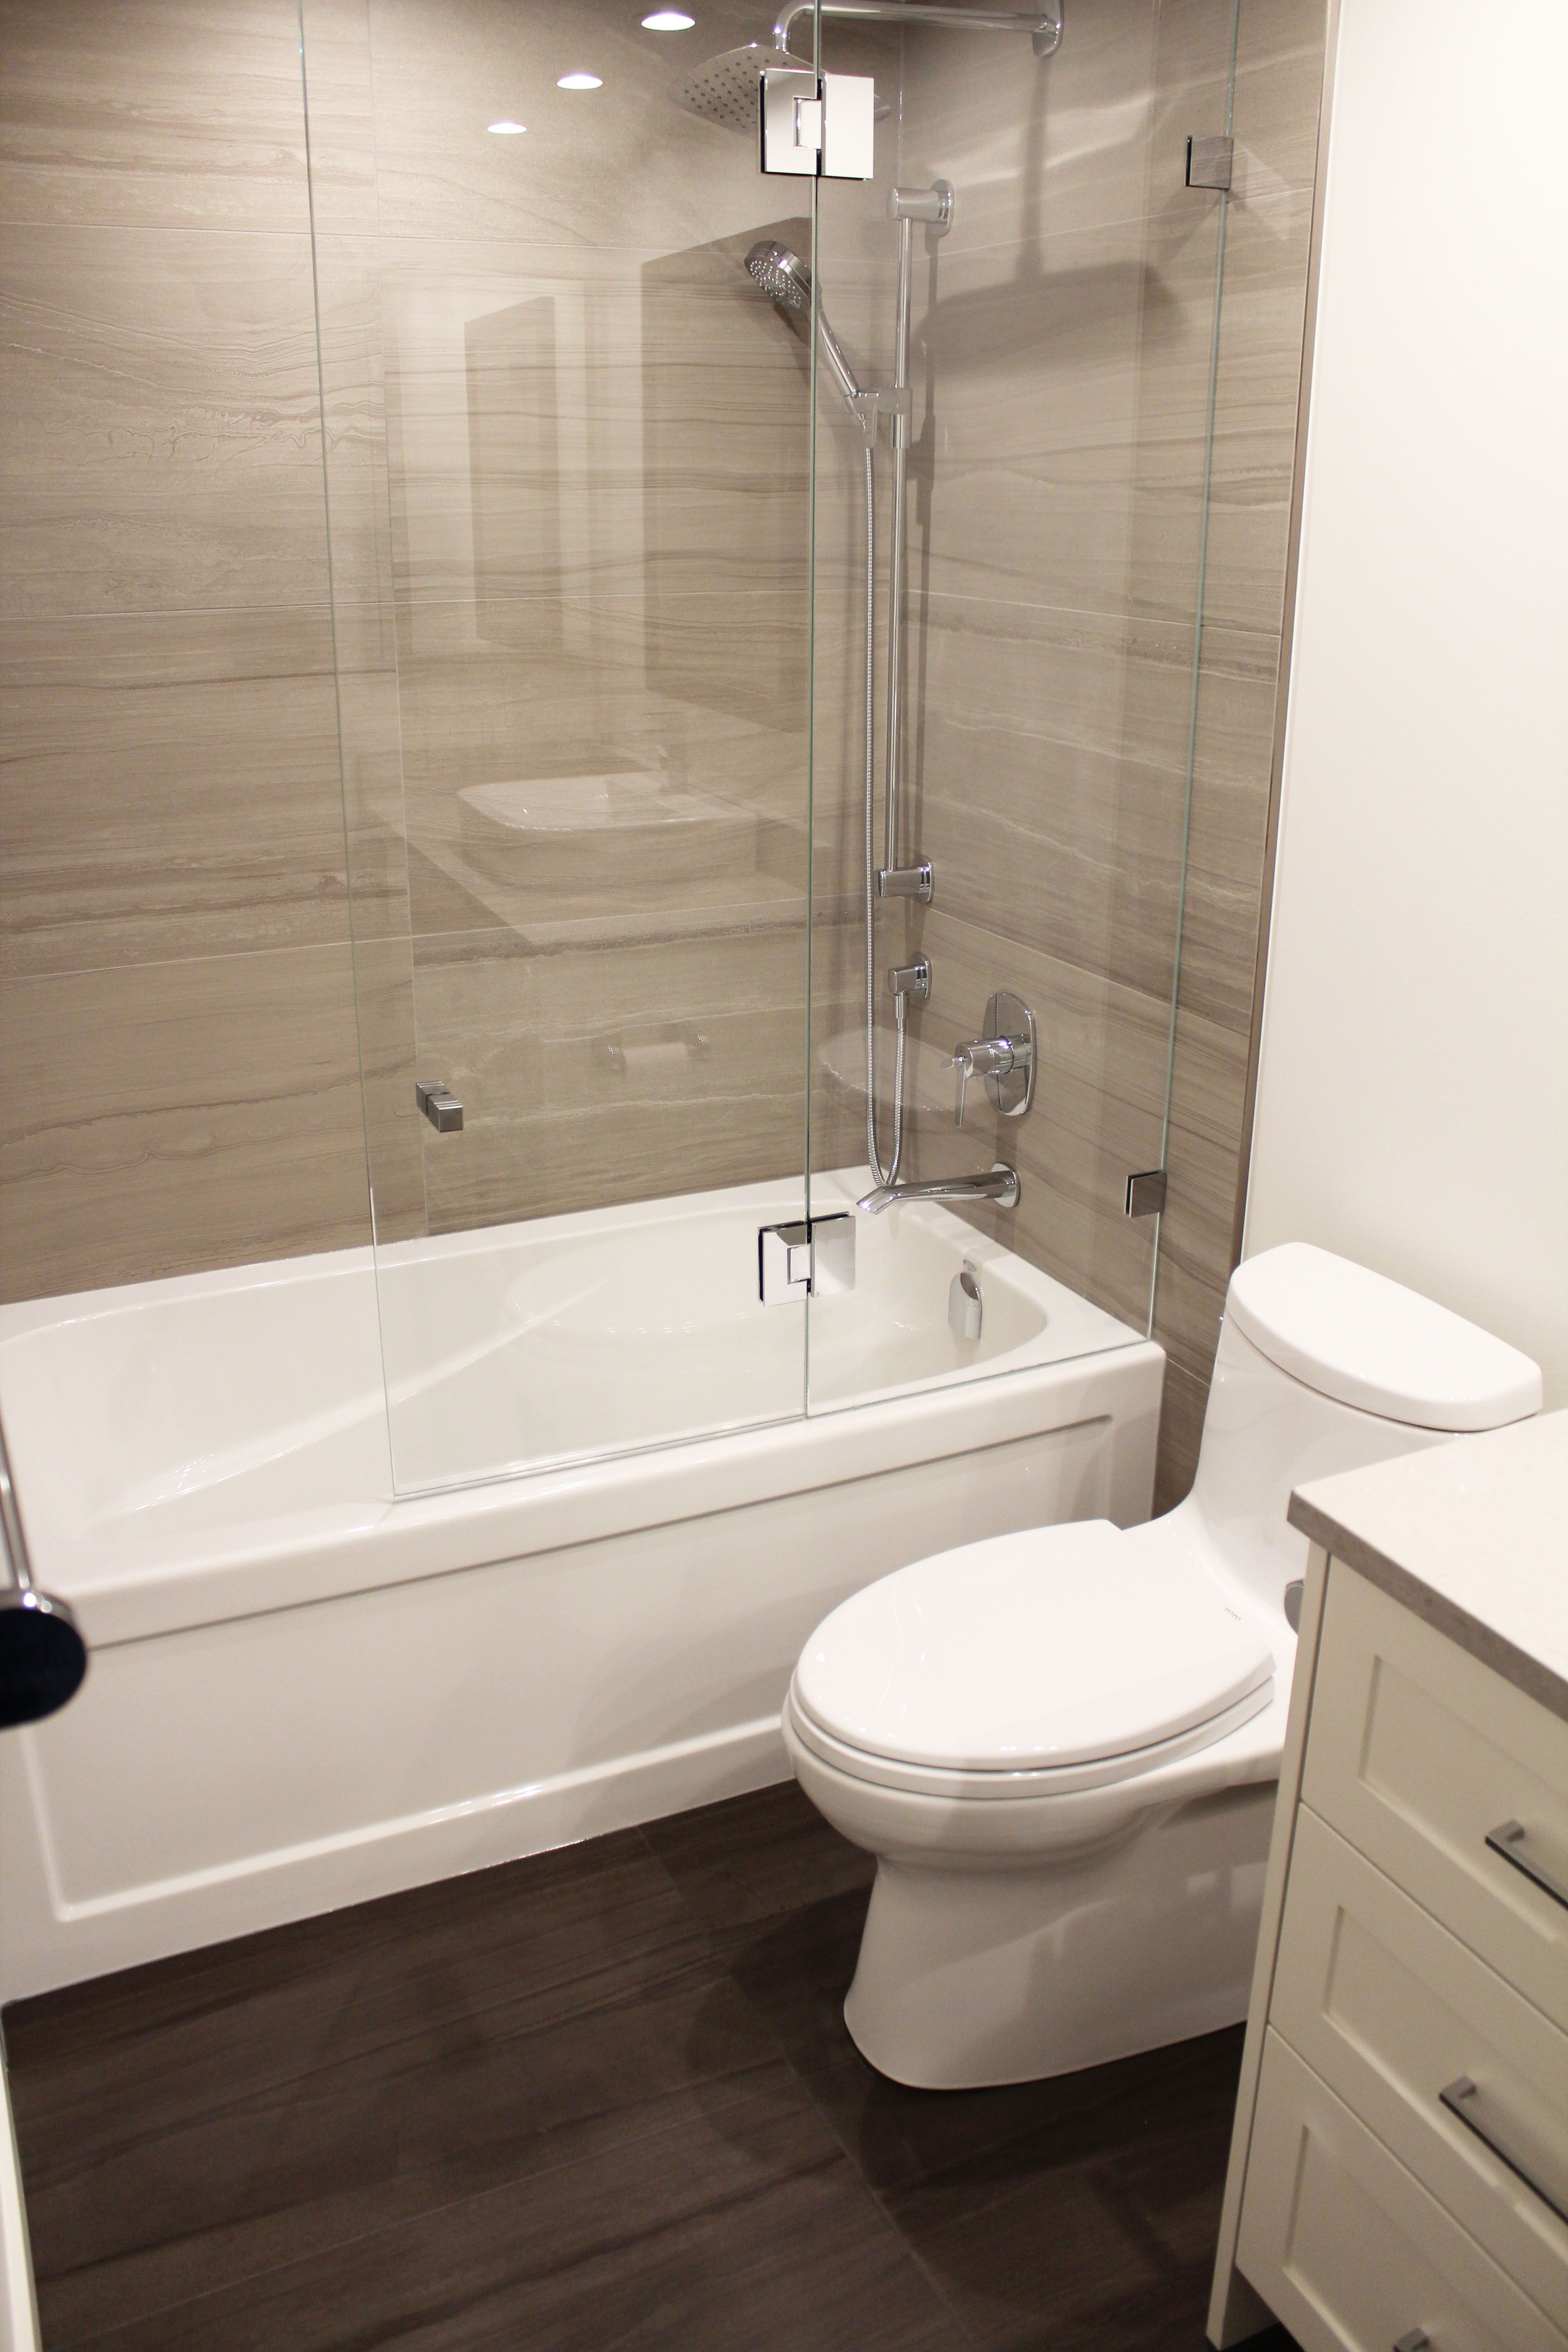 How Much Does It Cost To Renovate A Condo Bathroom